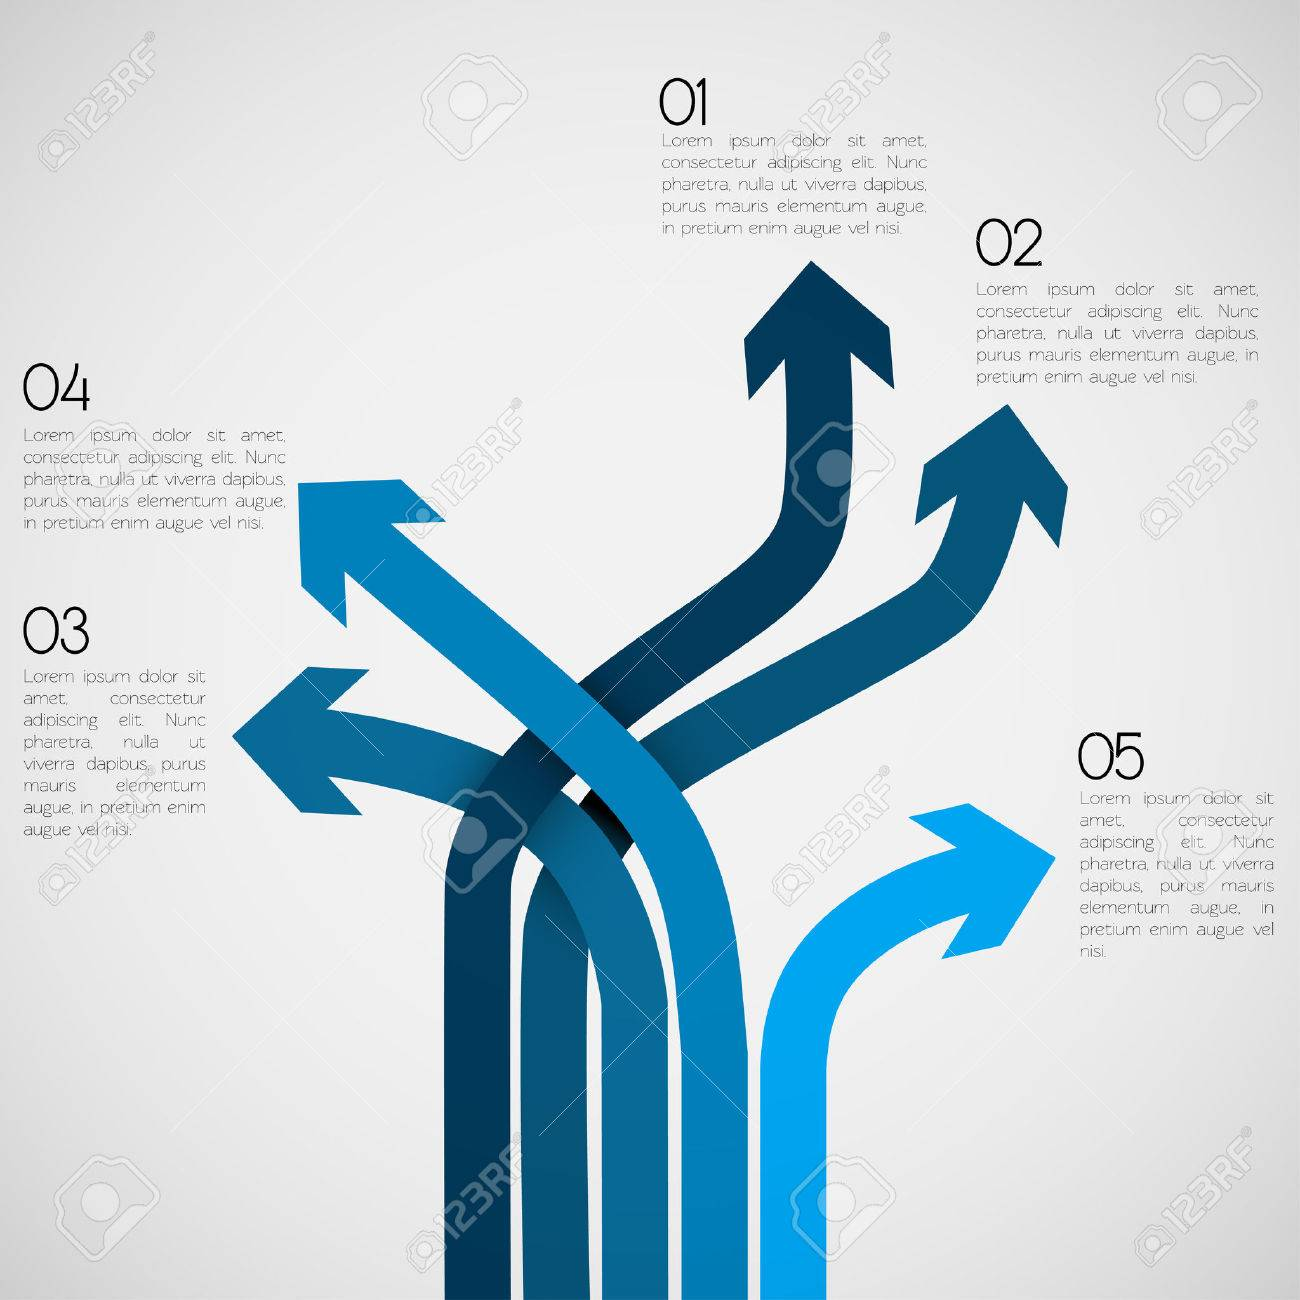 Different Way Infographics EPS10 Vector - 23764387